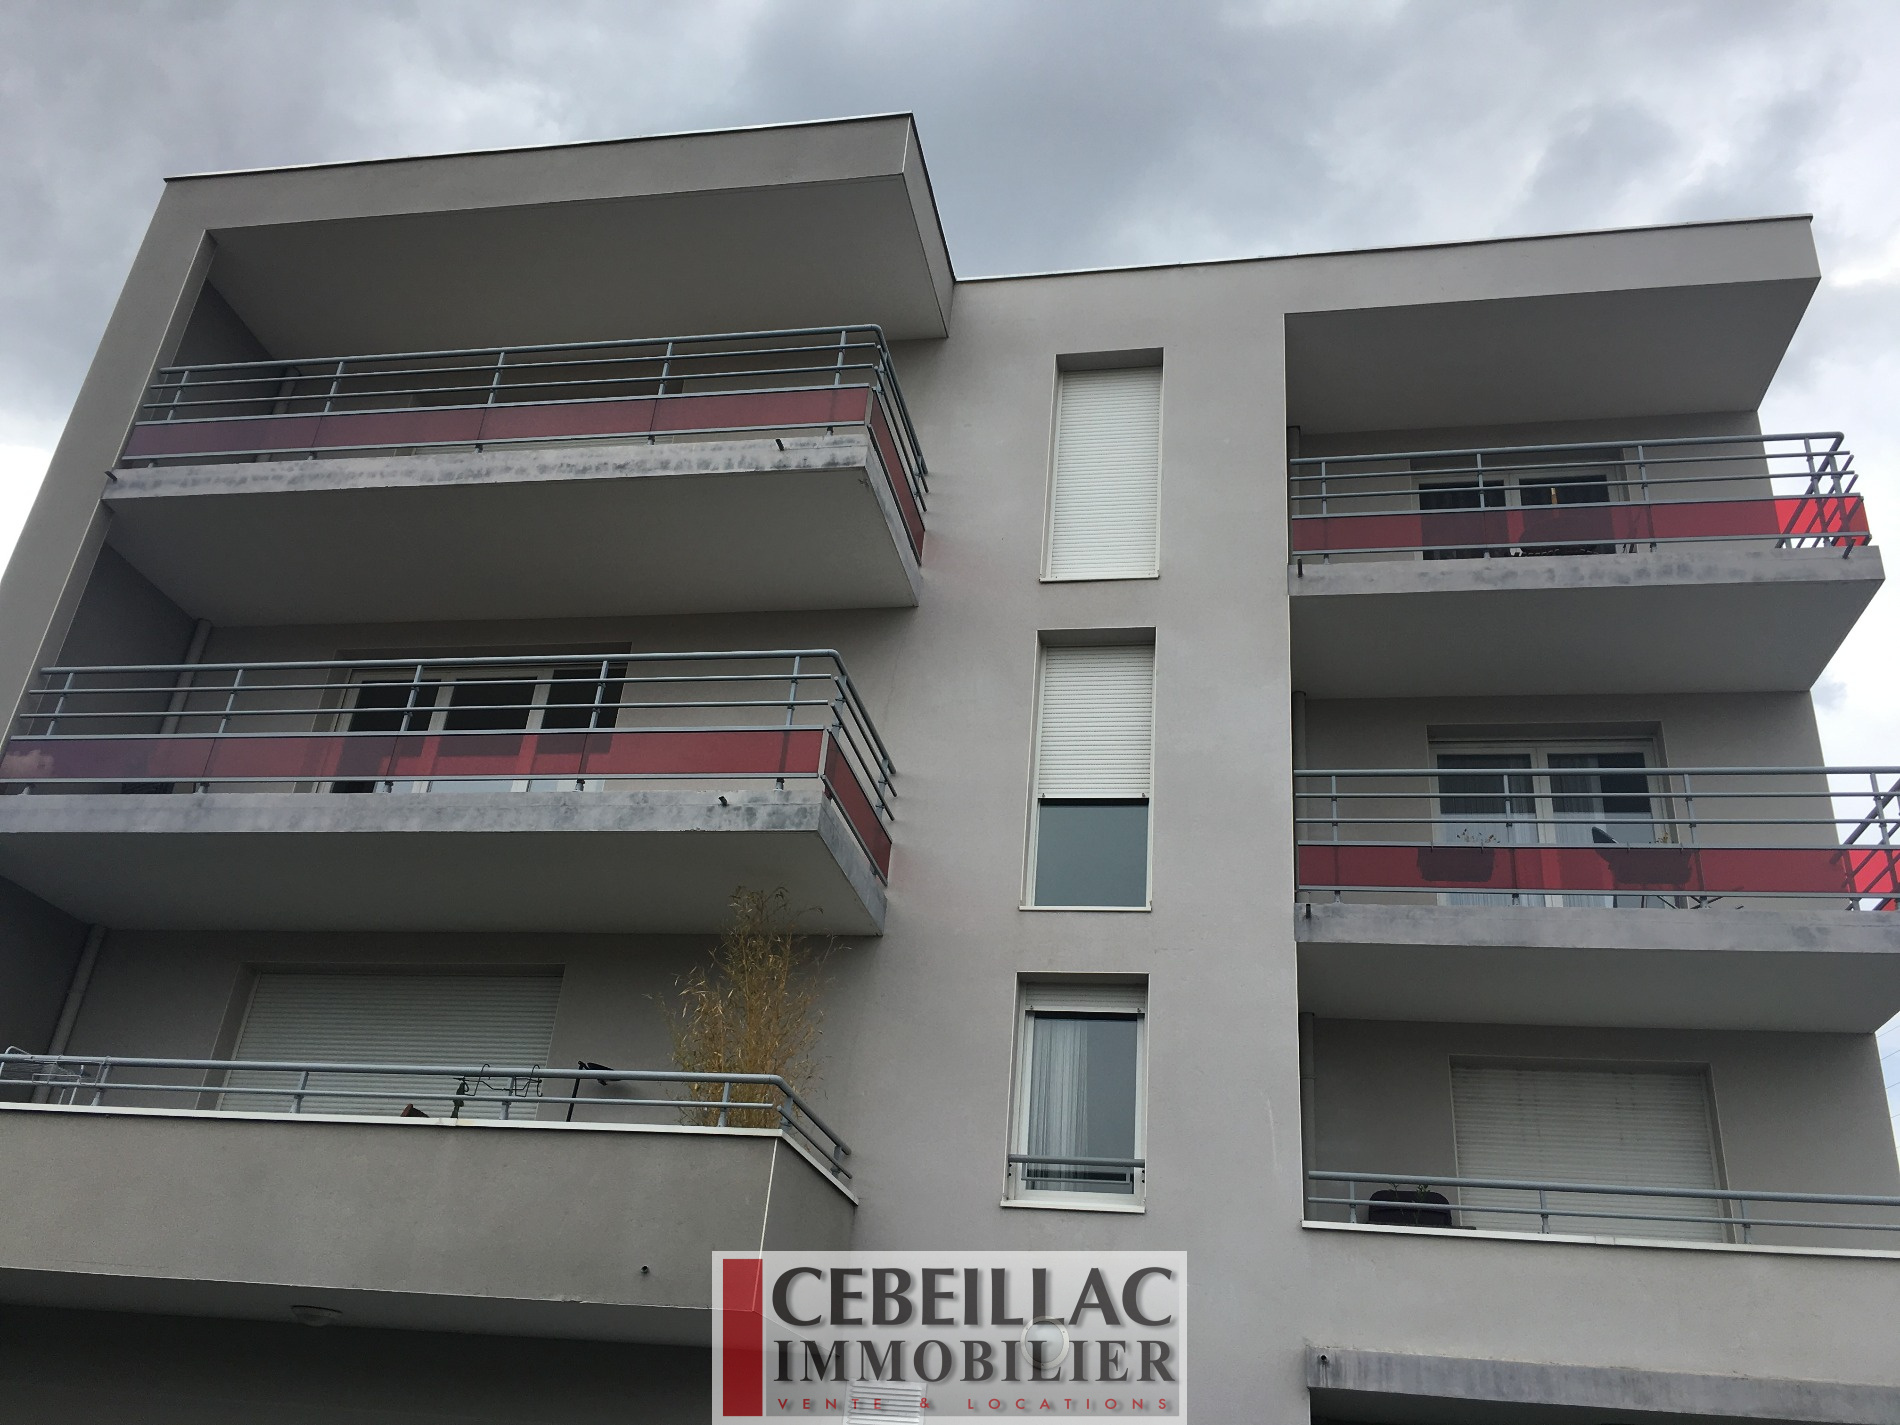 Location cebeillac immobilier - Location camion clermont ferrand ...